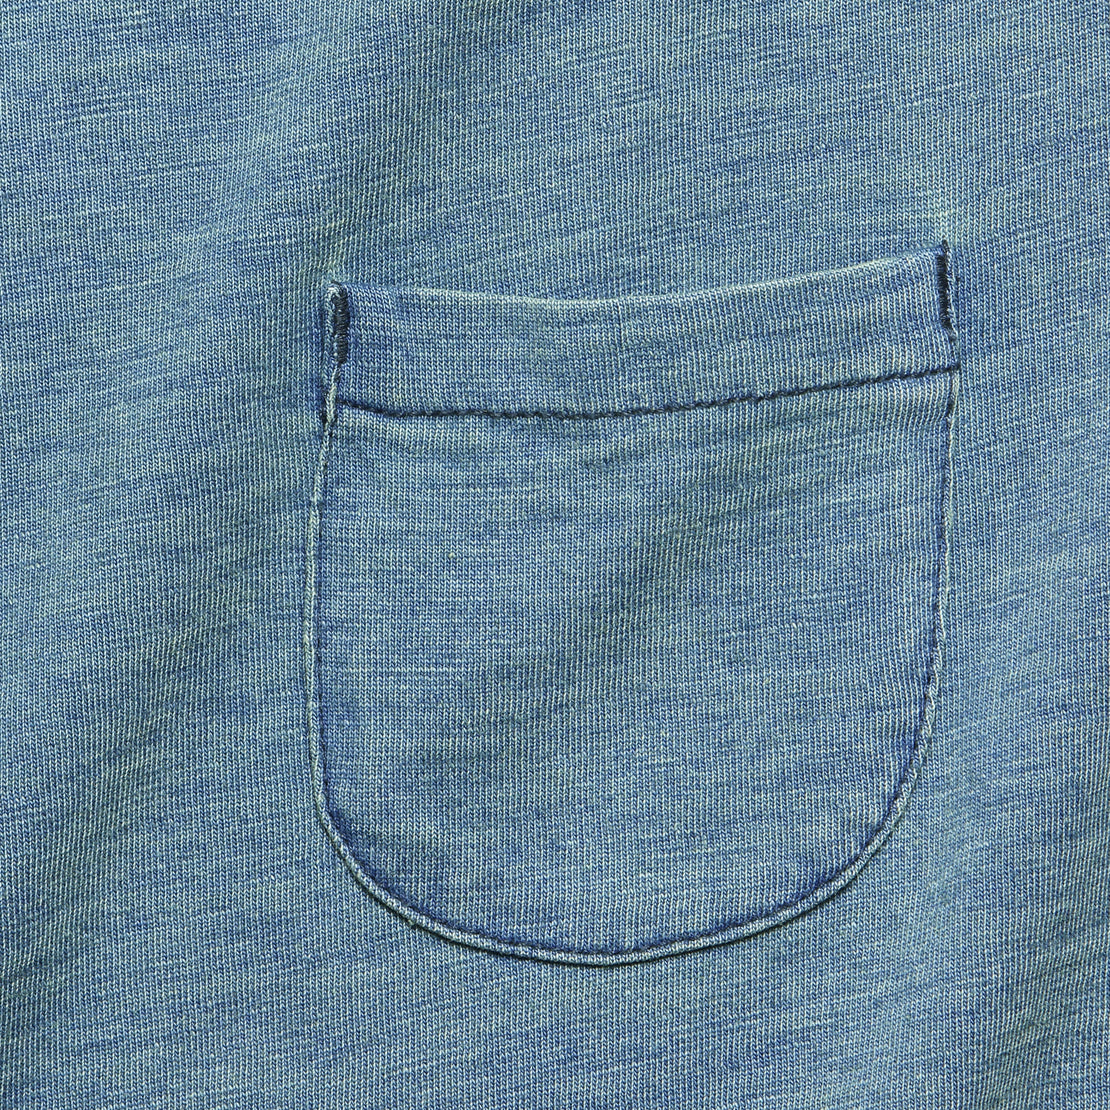 Slub Pocket Tee - Washed Indigo